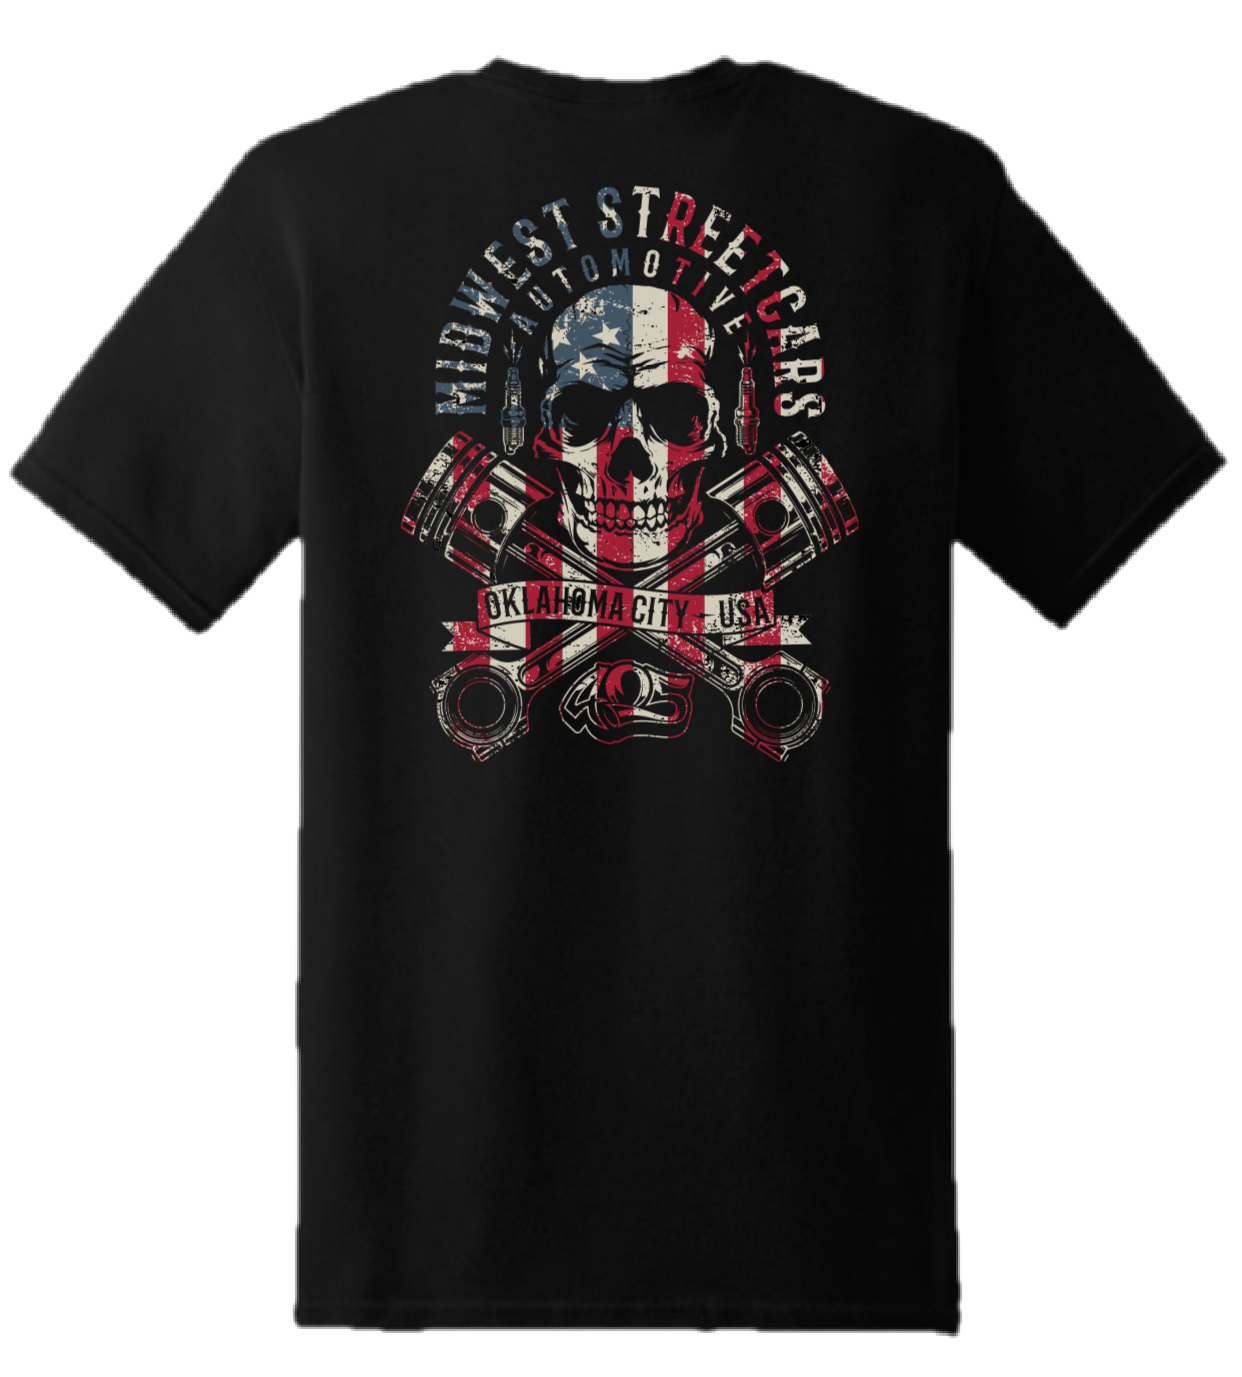 Midwest Streetcars Summer 2019  T-Shirt!